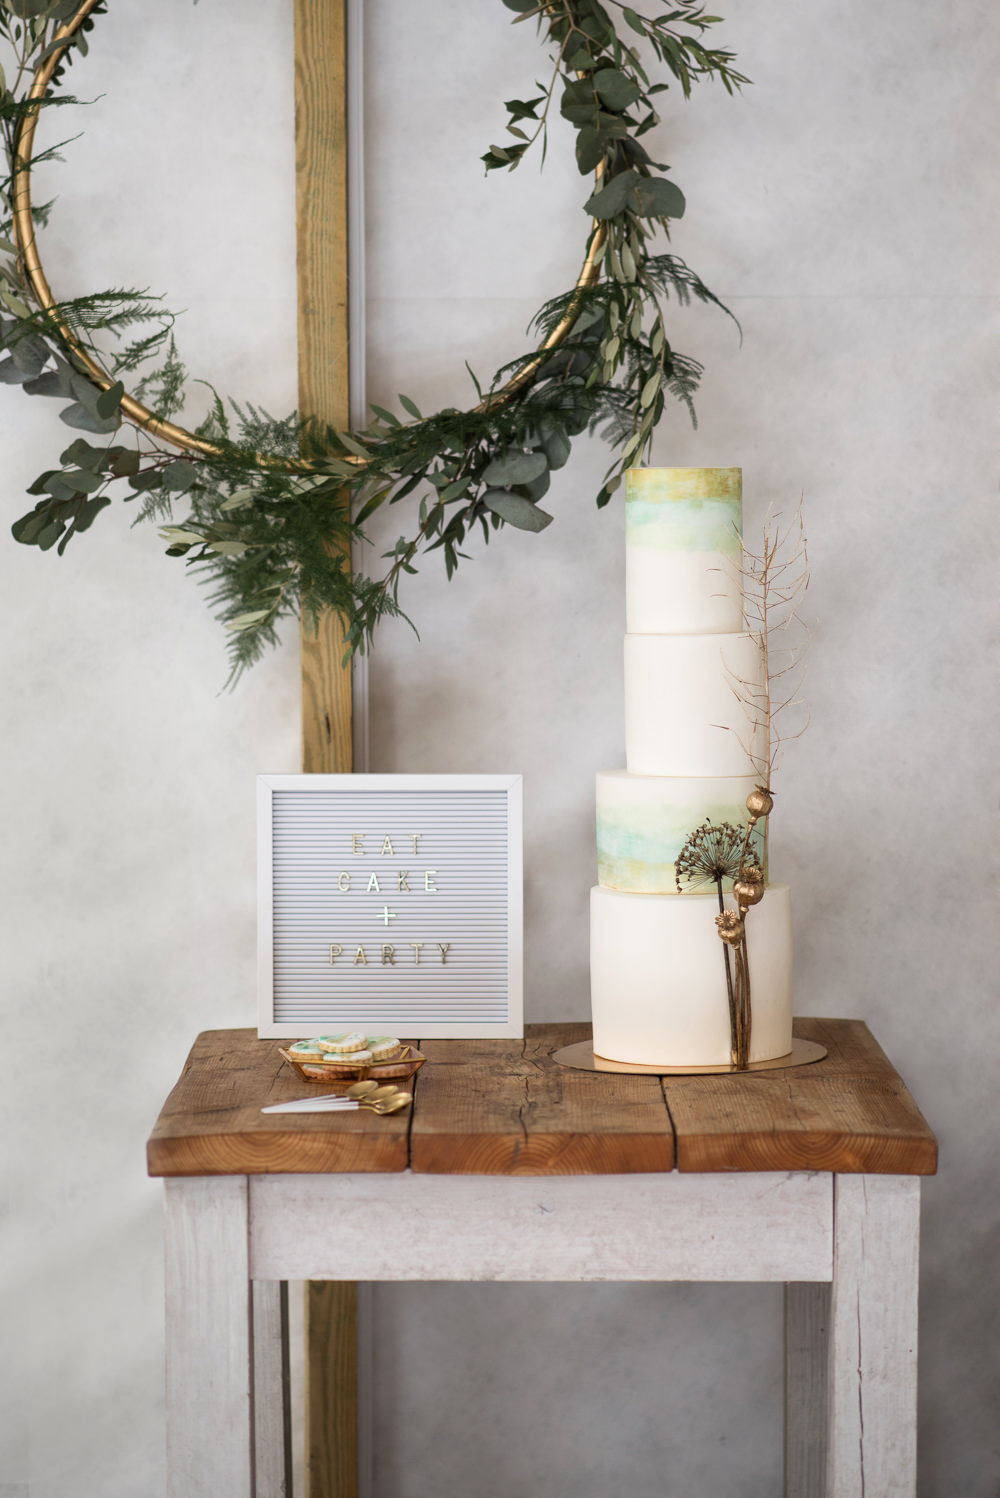 Cake Iced Tall Green Gold Painted Watercolour Flower Heads Wreath Table Felt Peg Board Sign Signage Signs Minimalist Wedding Ideas Nicola Belson Photography